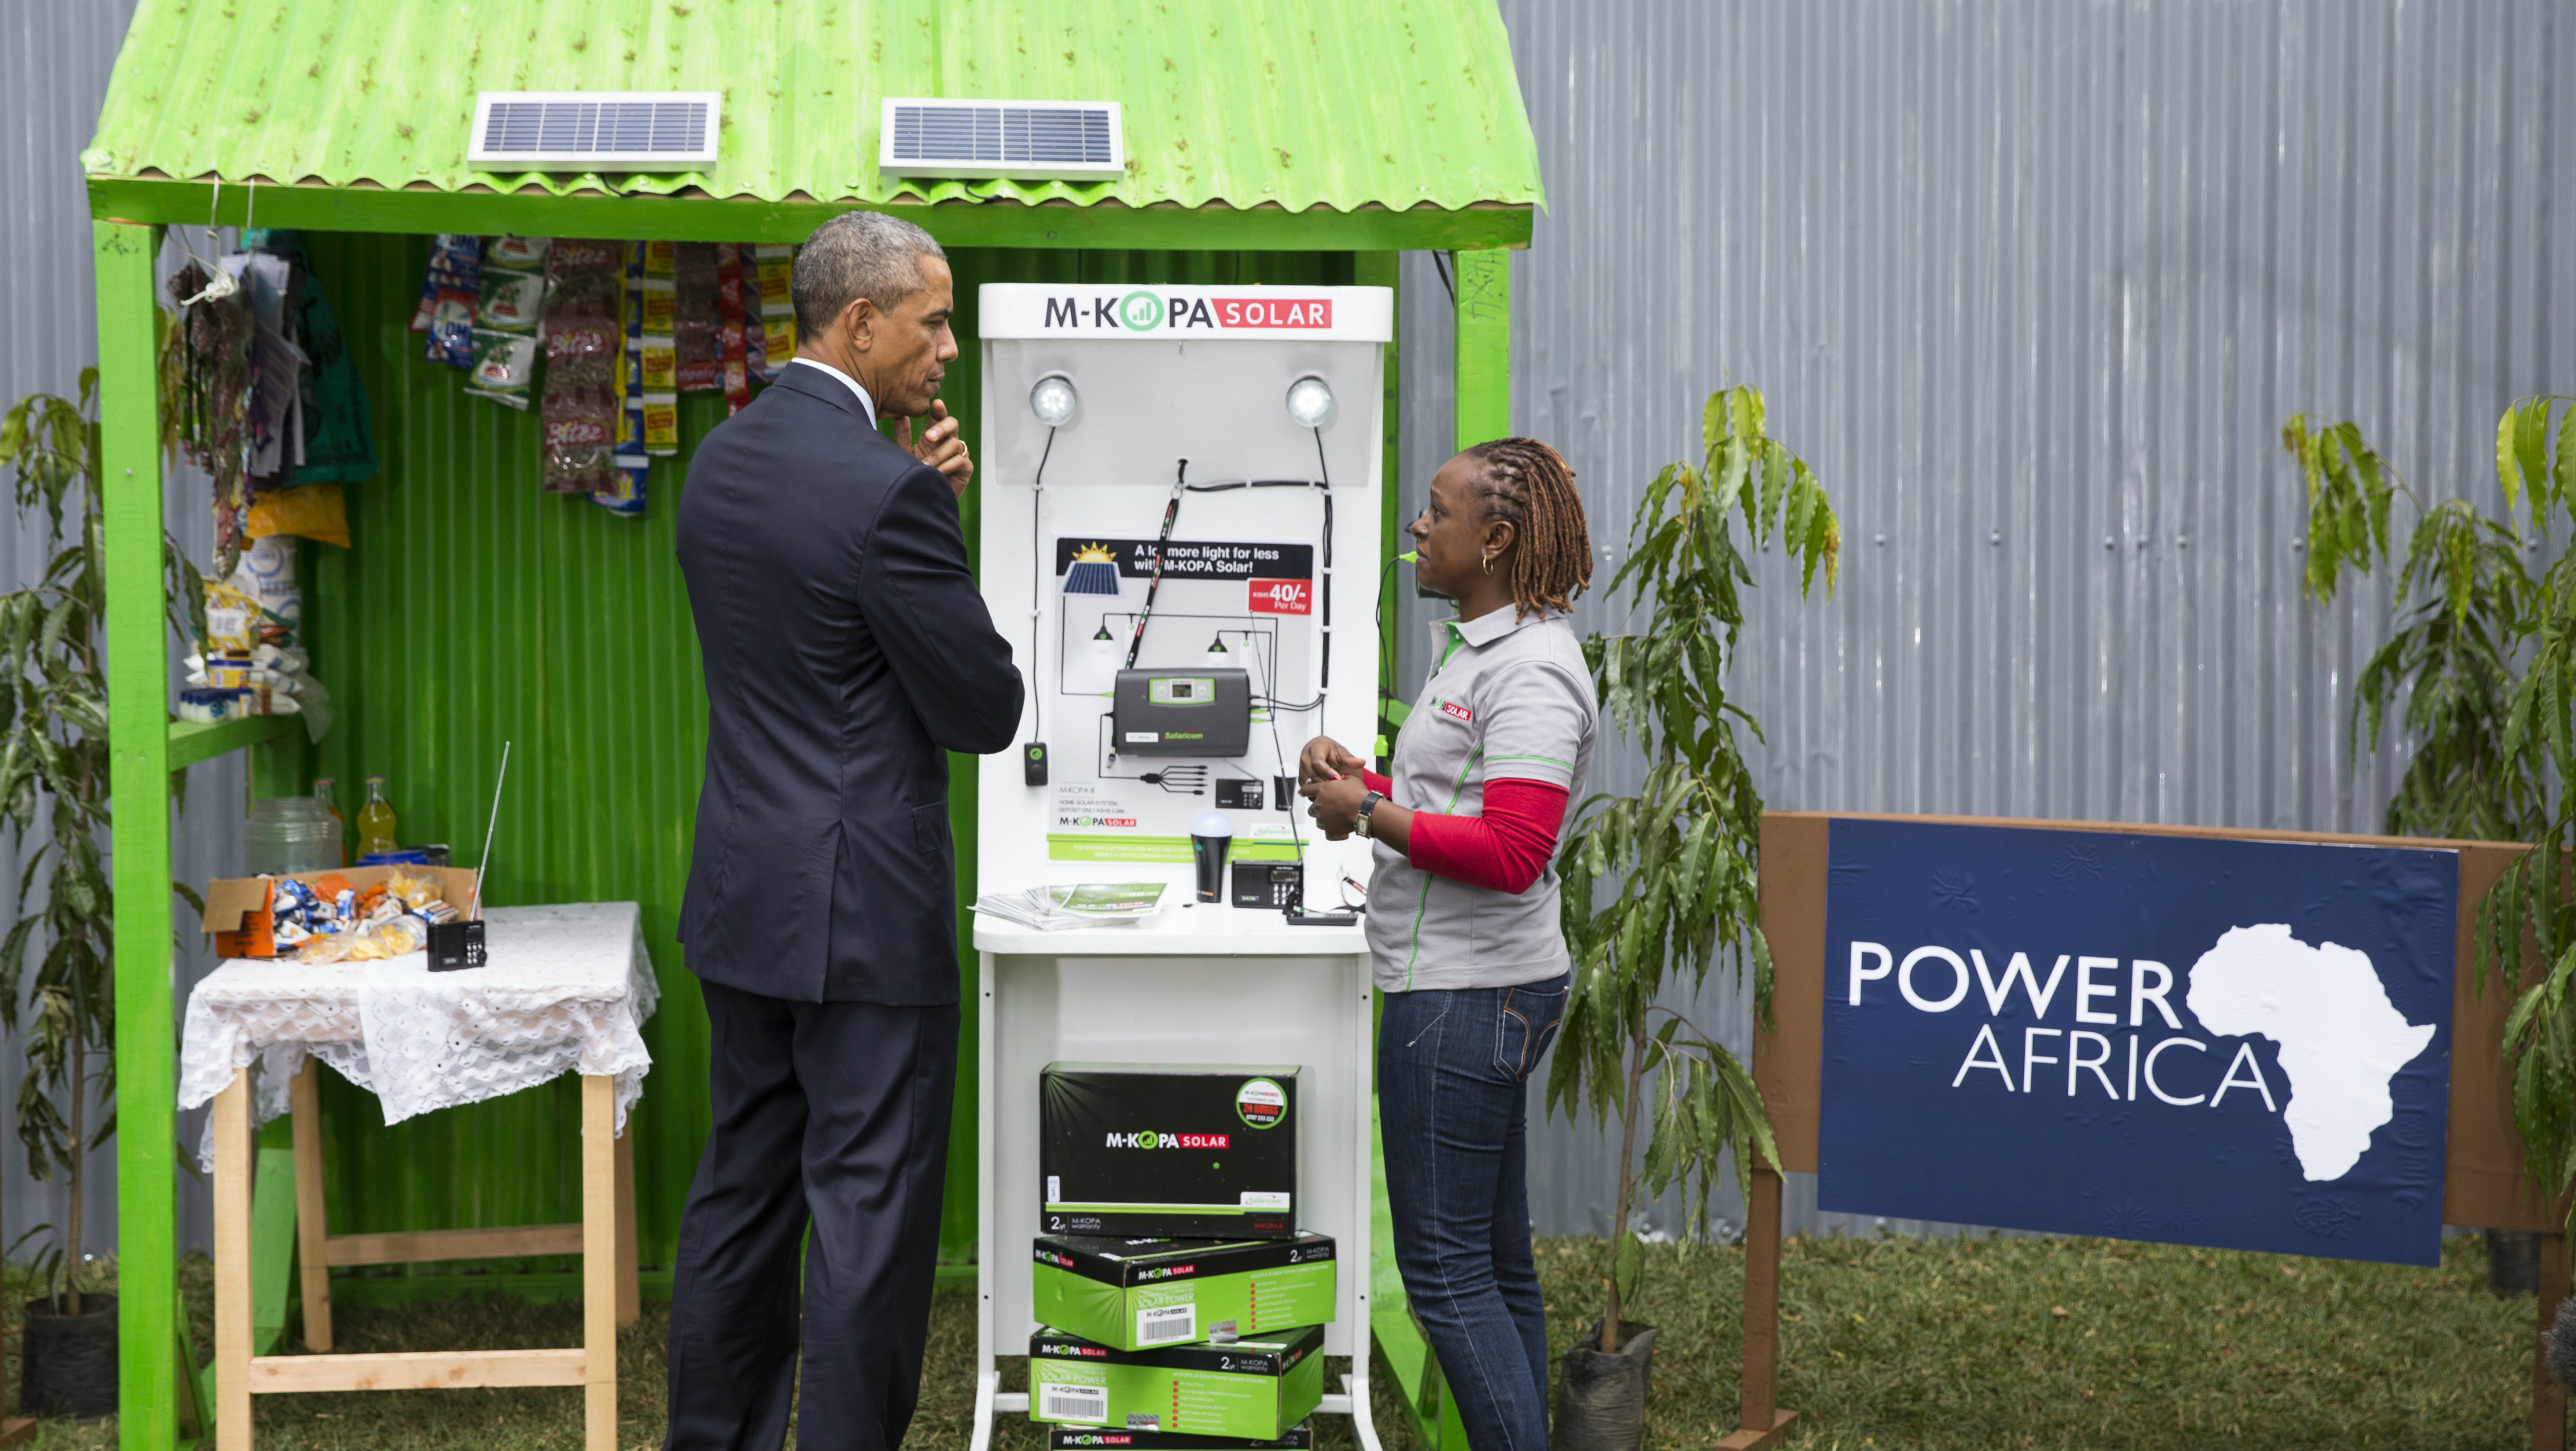 President Barack Obama looks at a solar power exhibit during a tour of the Power Africa Innovation Fair, Saturday, July 25, 2015, in Nairobi. Obama's visit to Kenya is focused on trade and economic issues, as well as security and counterterrorism cooperation.